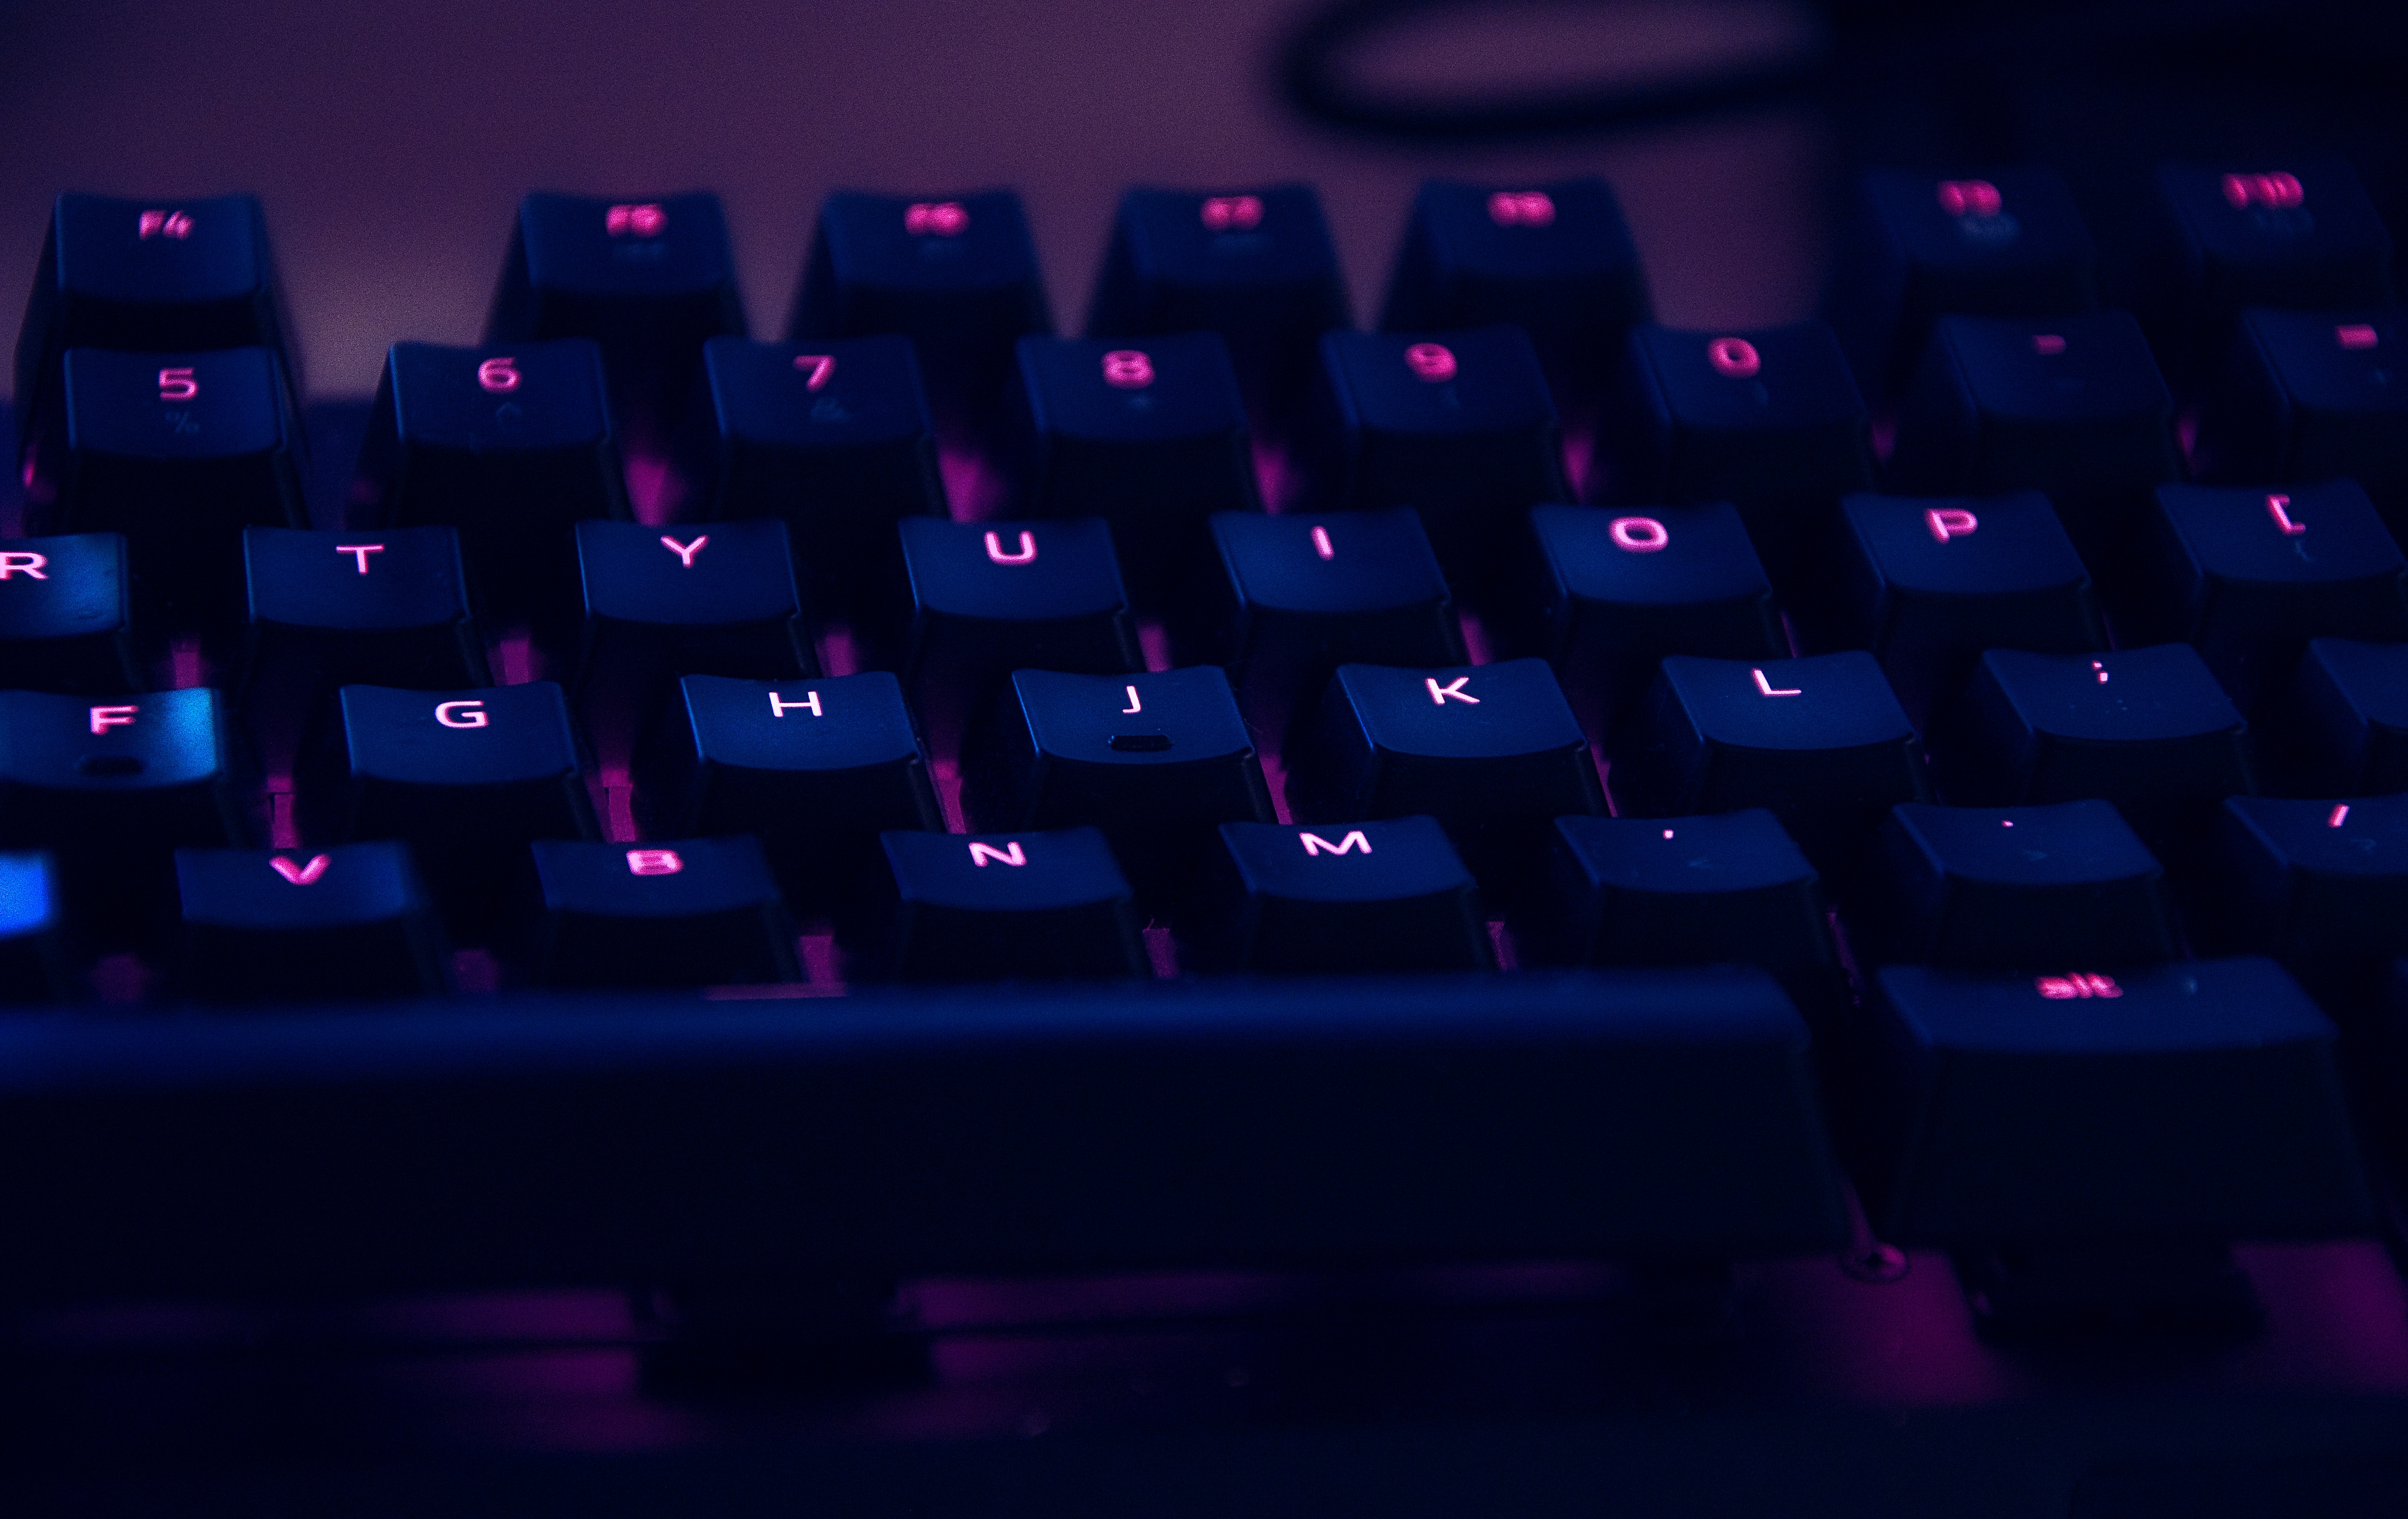 black keyboard with vibrant colored key letters